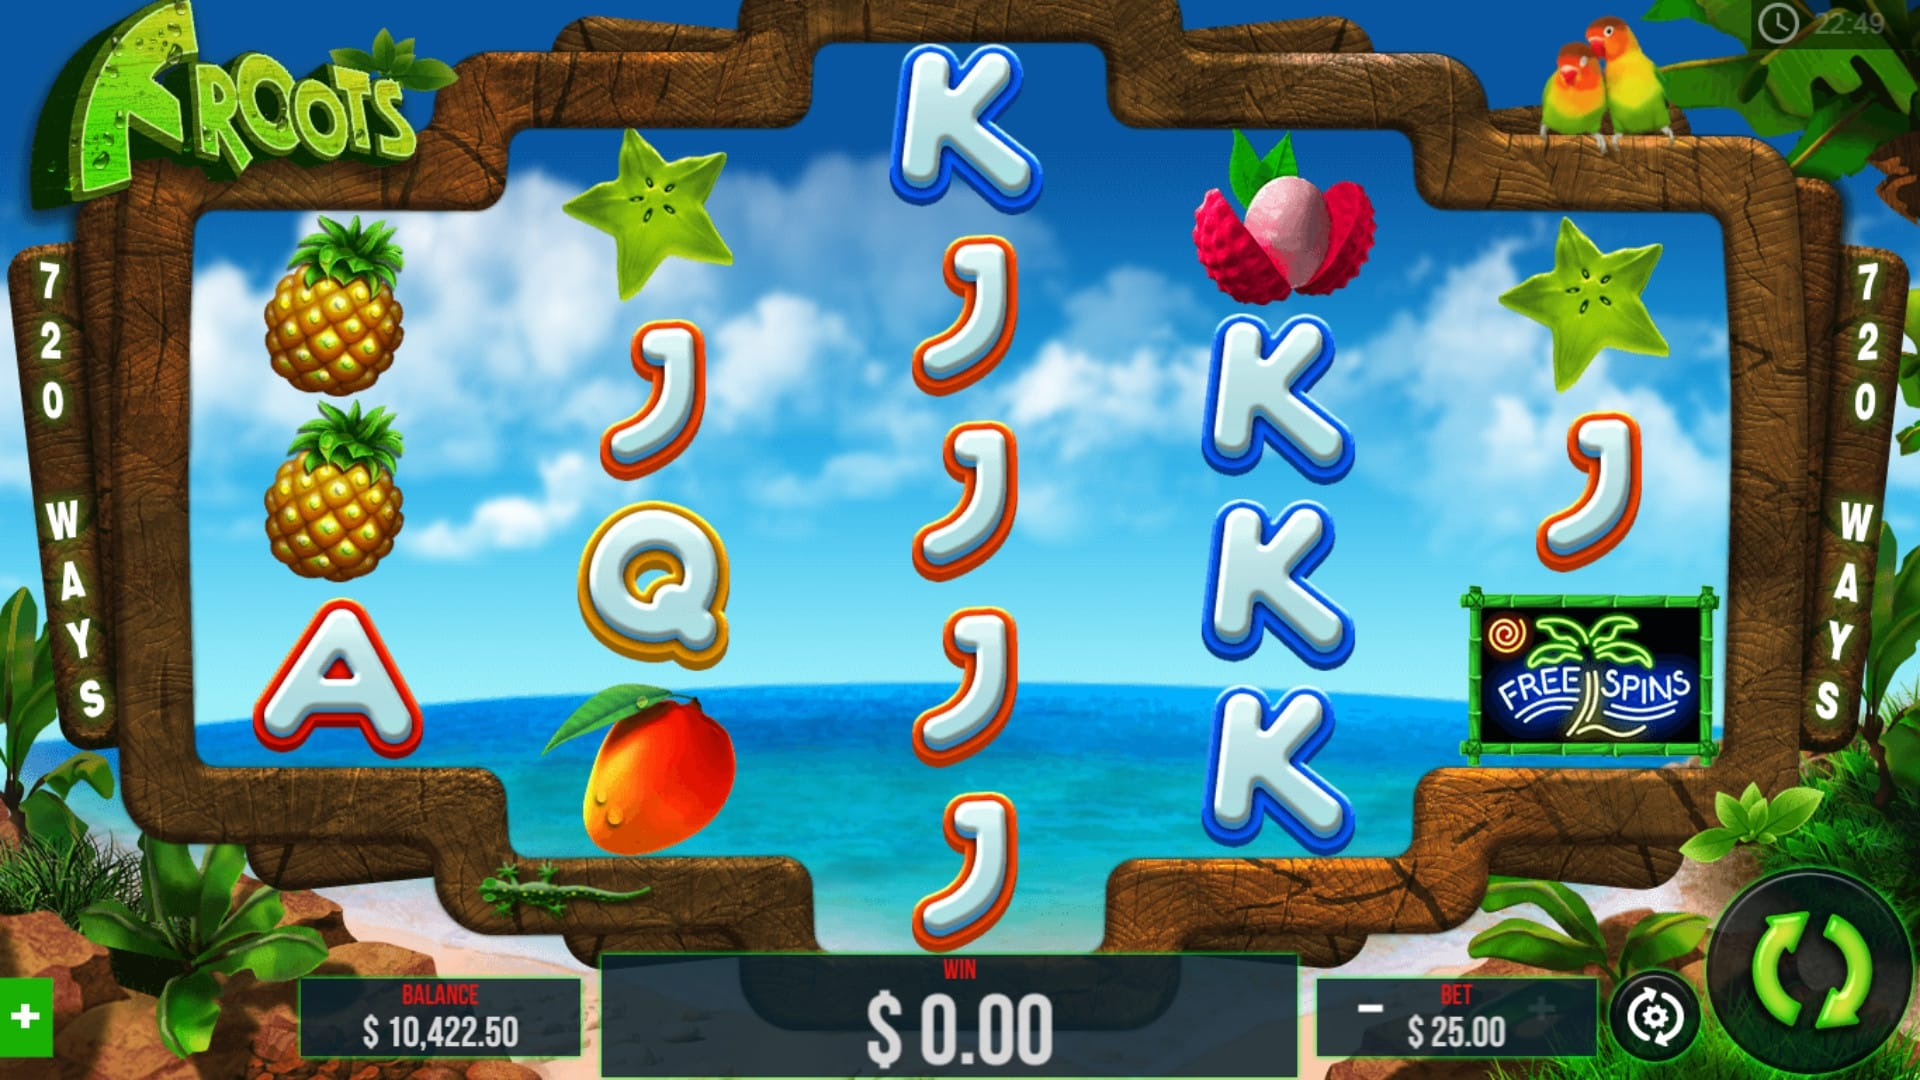 Froots Slot Game Gameplay